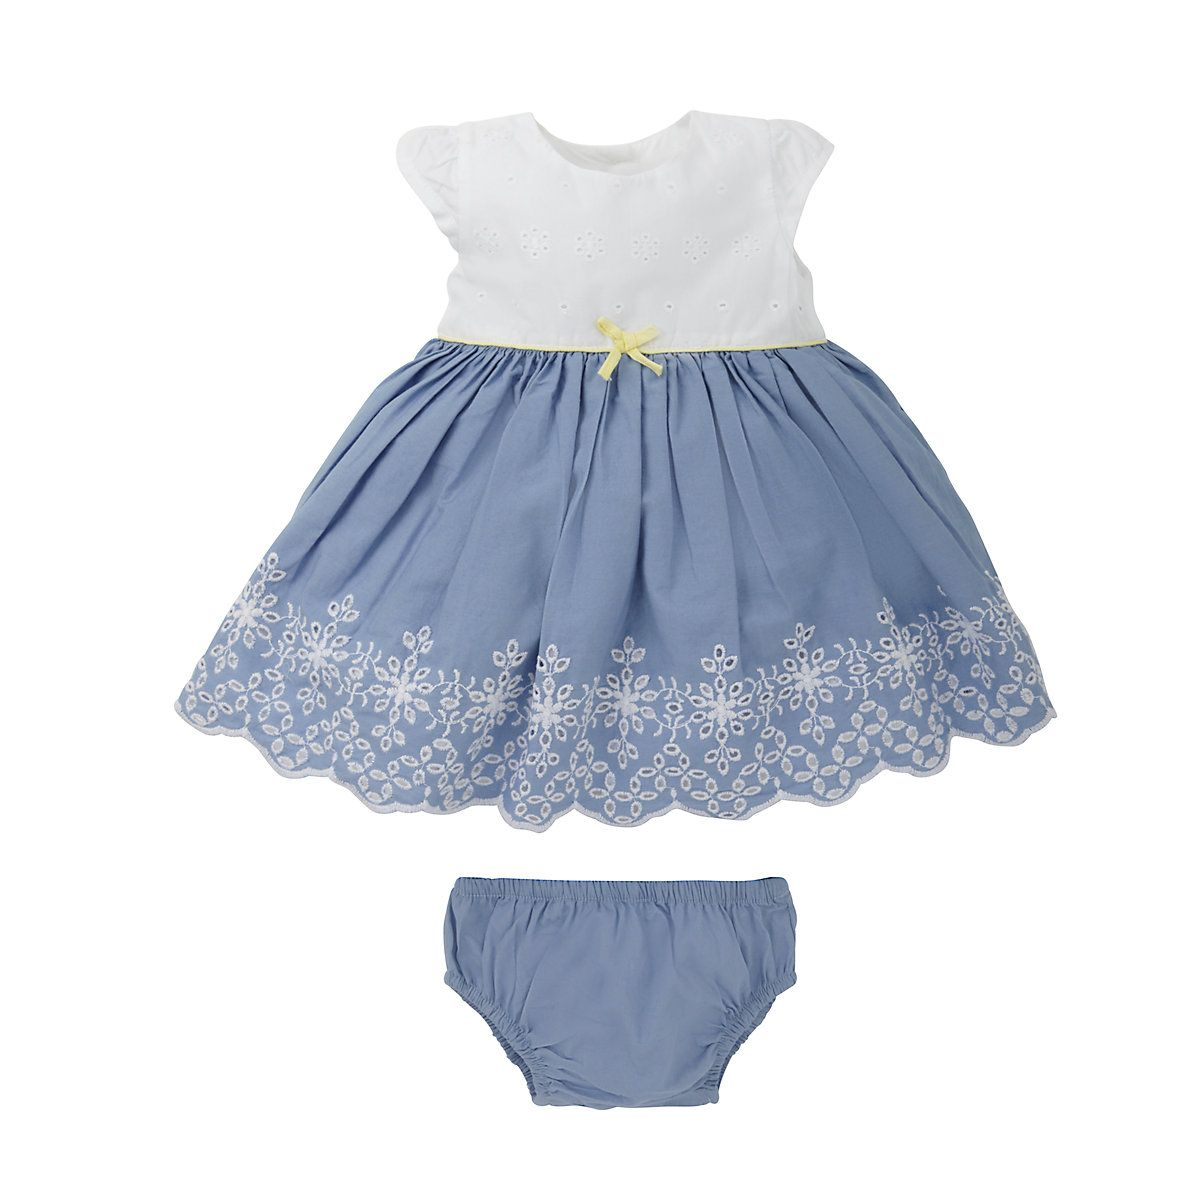 Blue Embroidered Romper Dress | Baby checklist, Babies and Future baby